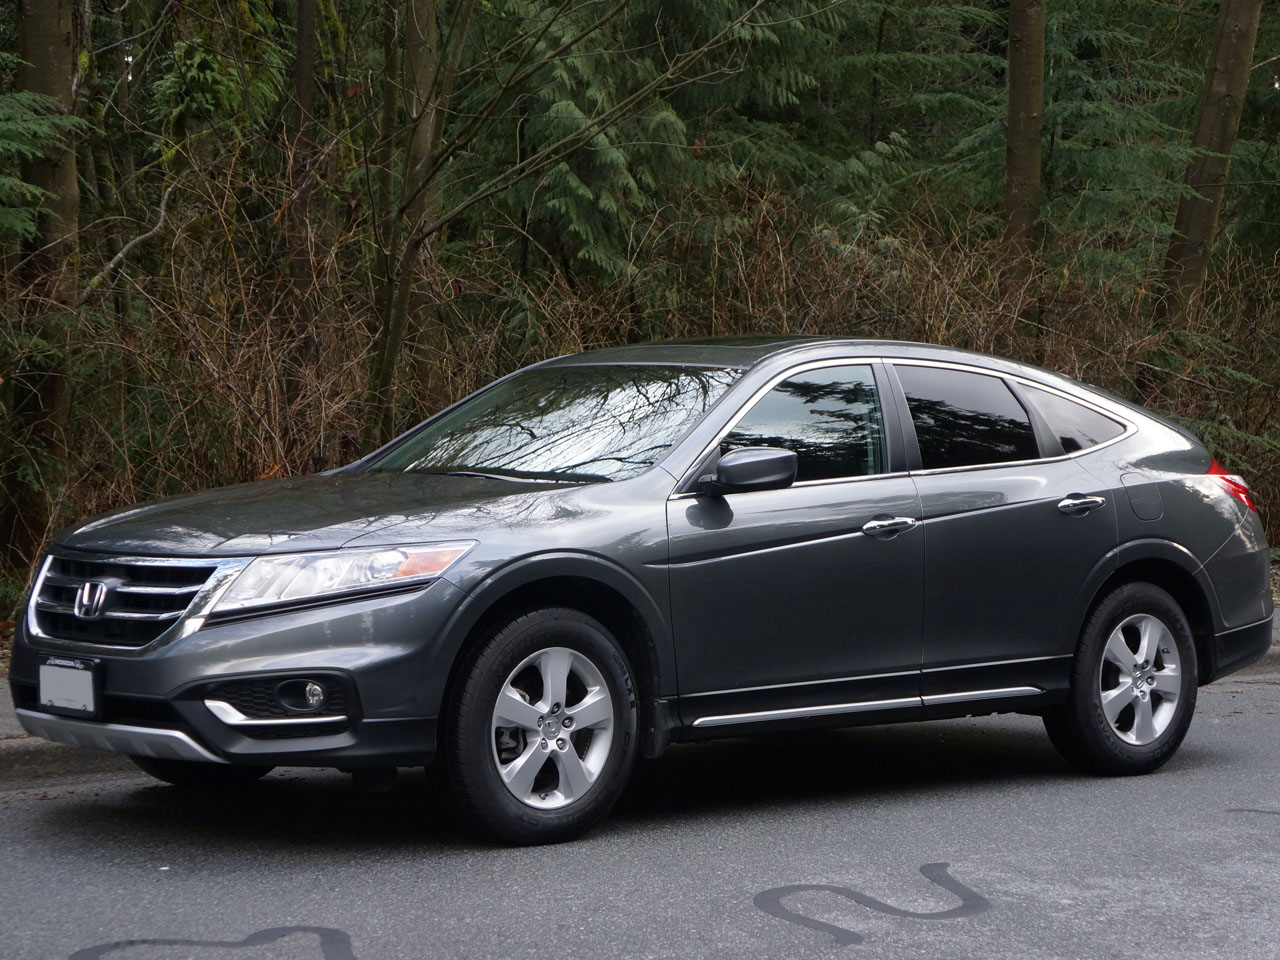 crosstour size ex image dashboard honda accord l